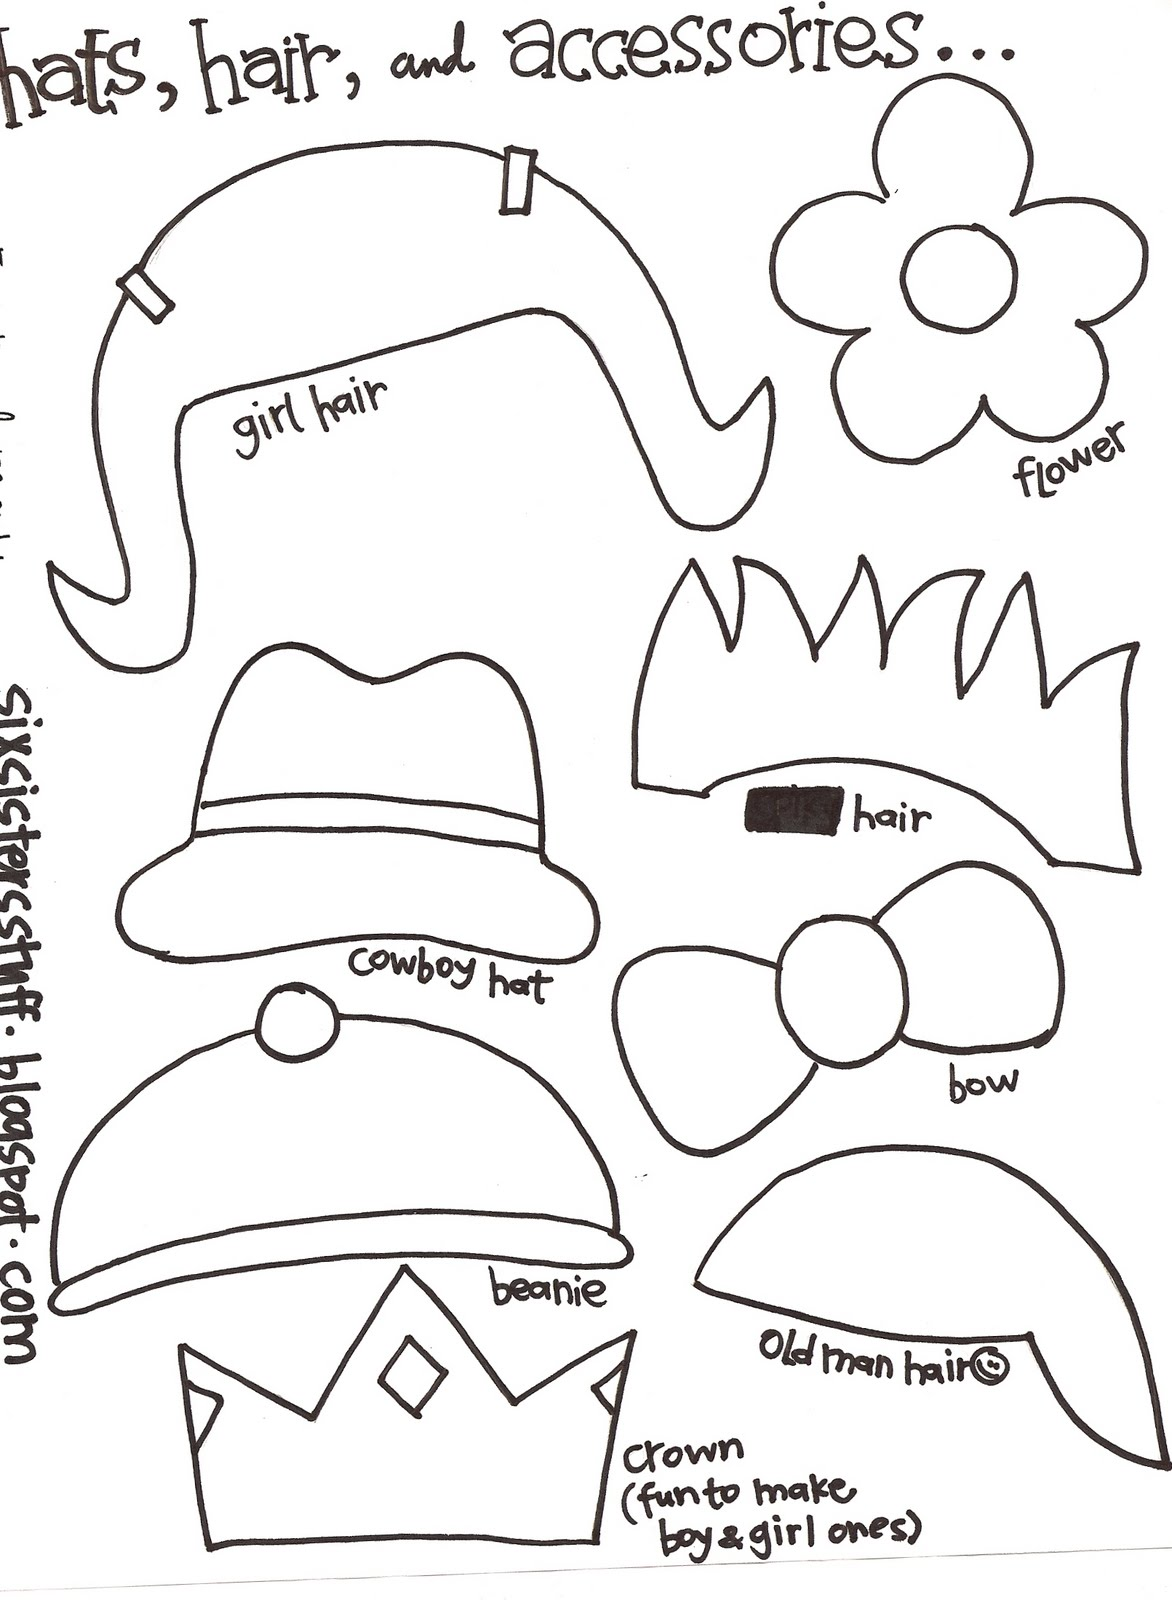 mosnter template - make your own monster puppets printable pattern six